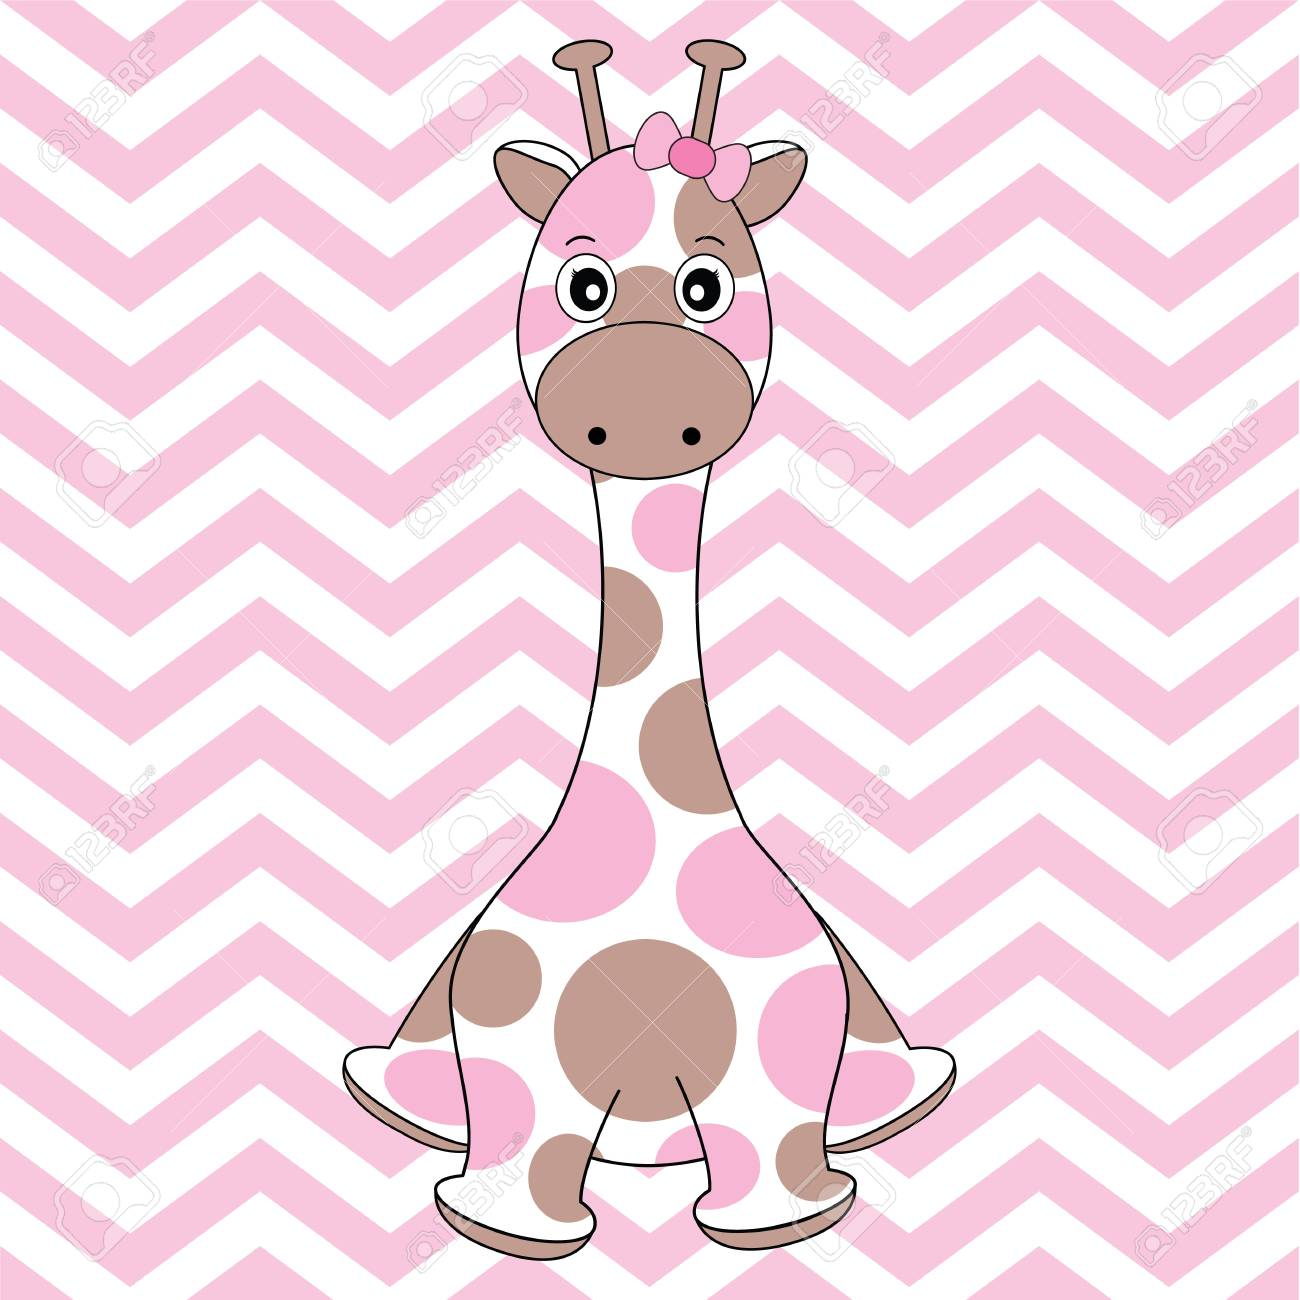 Baby Shower Card With Cute Giraffe On Chevron Background Suitable For Nursery Wall